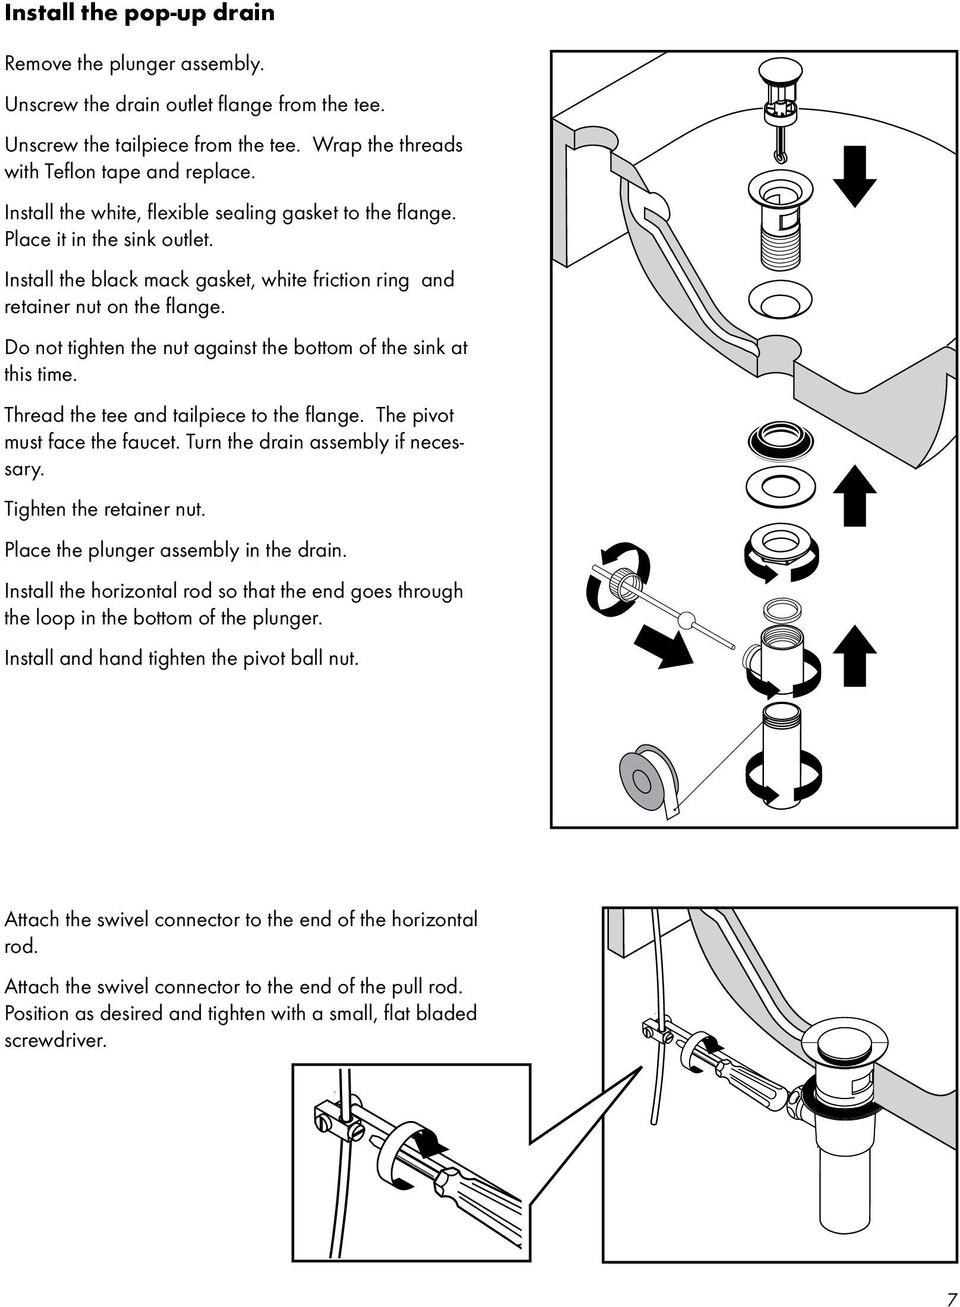 Do not tighten the nut against the bottom of the sink at this time. Thread the tee and tailpiece to the flange. The pivot must face the faucet. Turn the drain assembly if necessary.